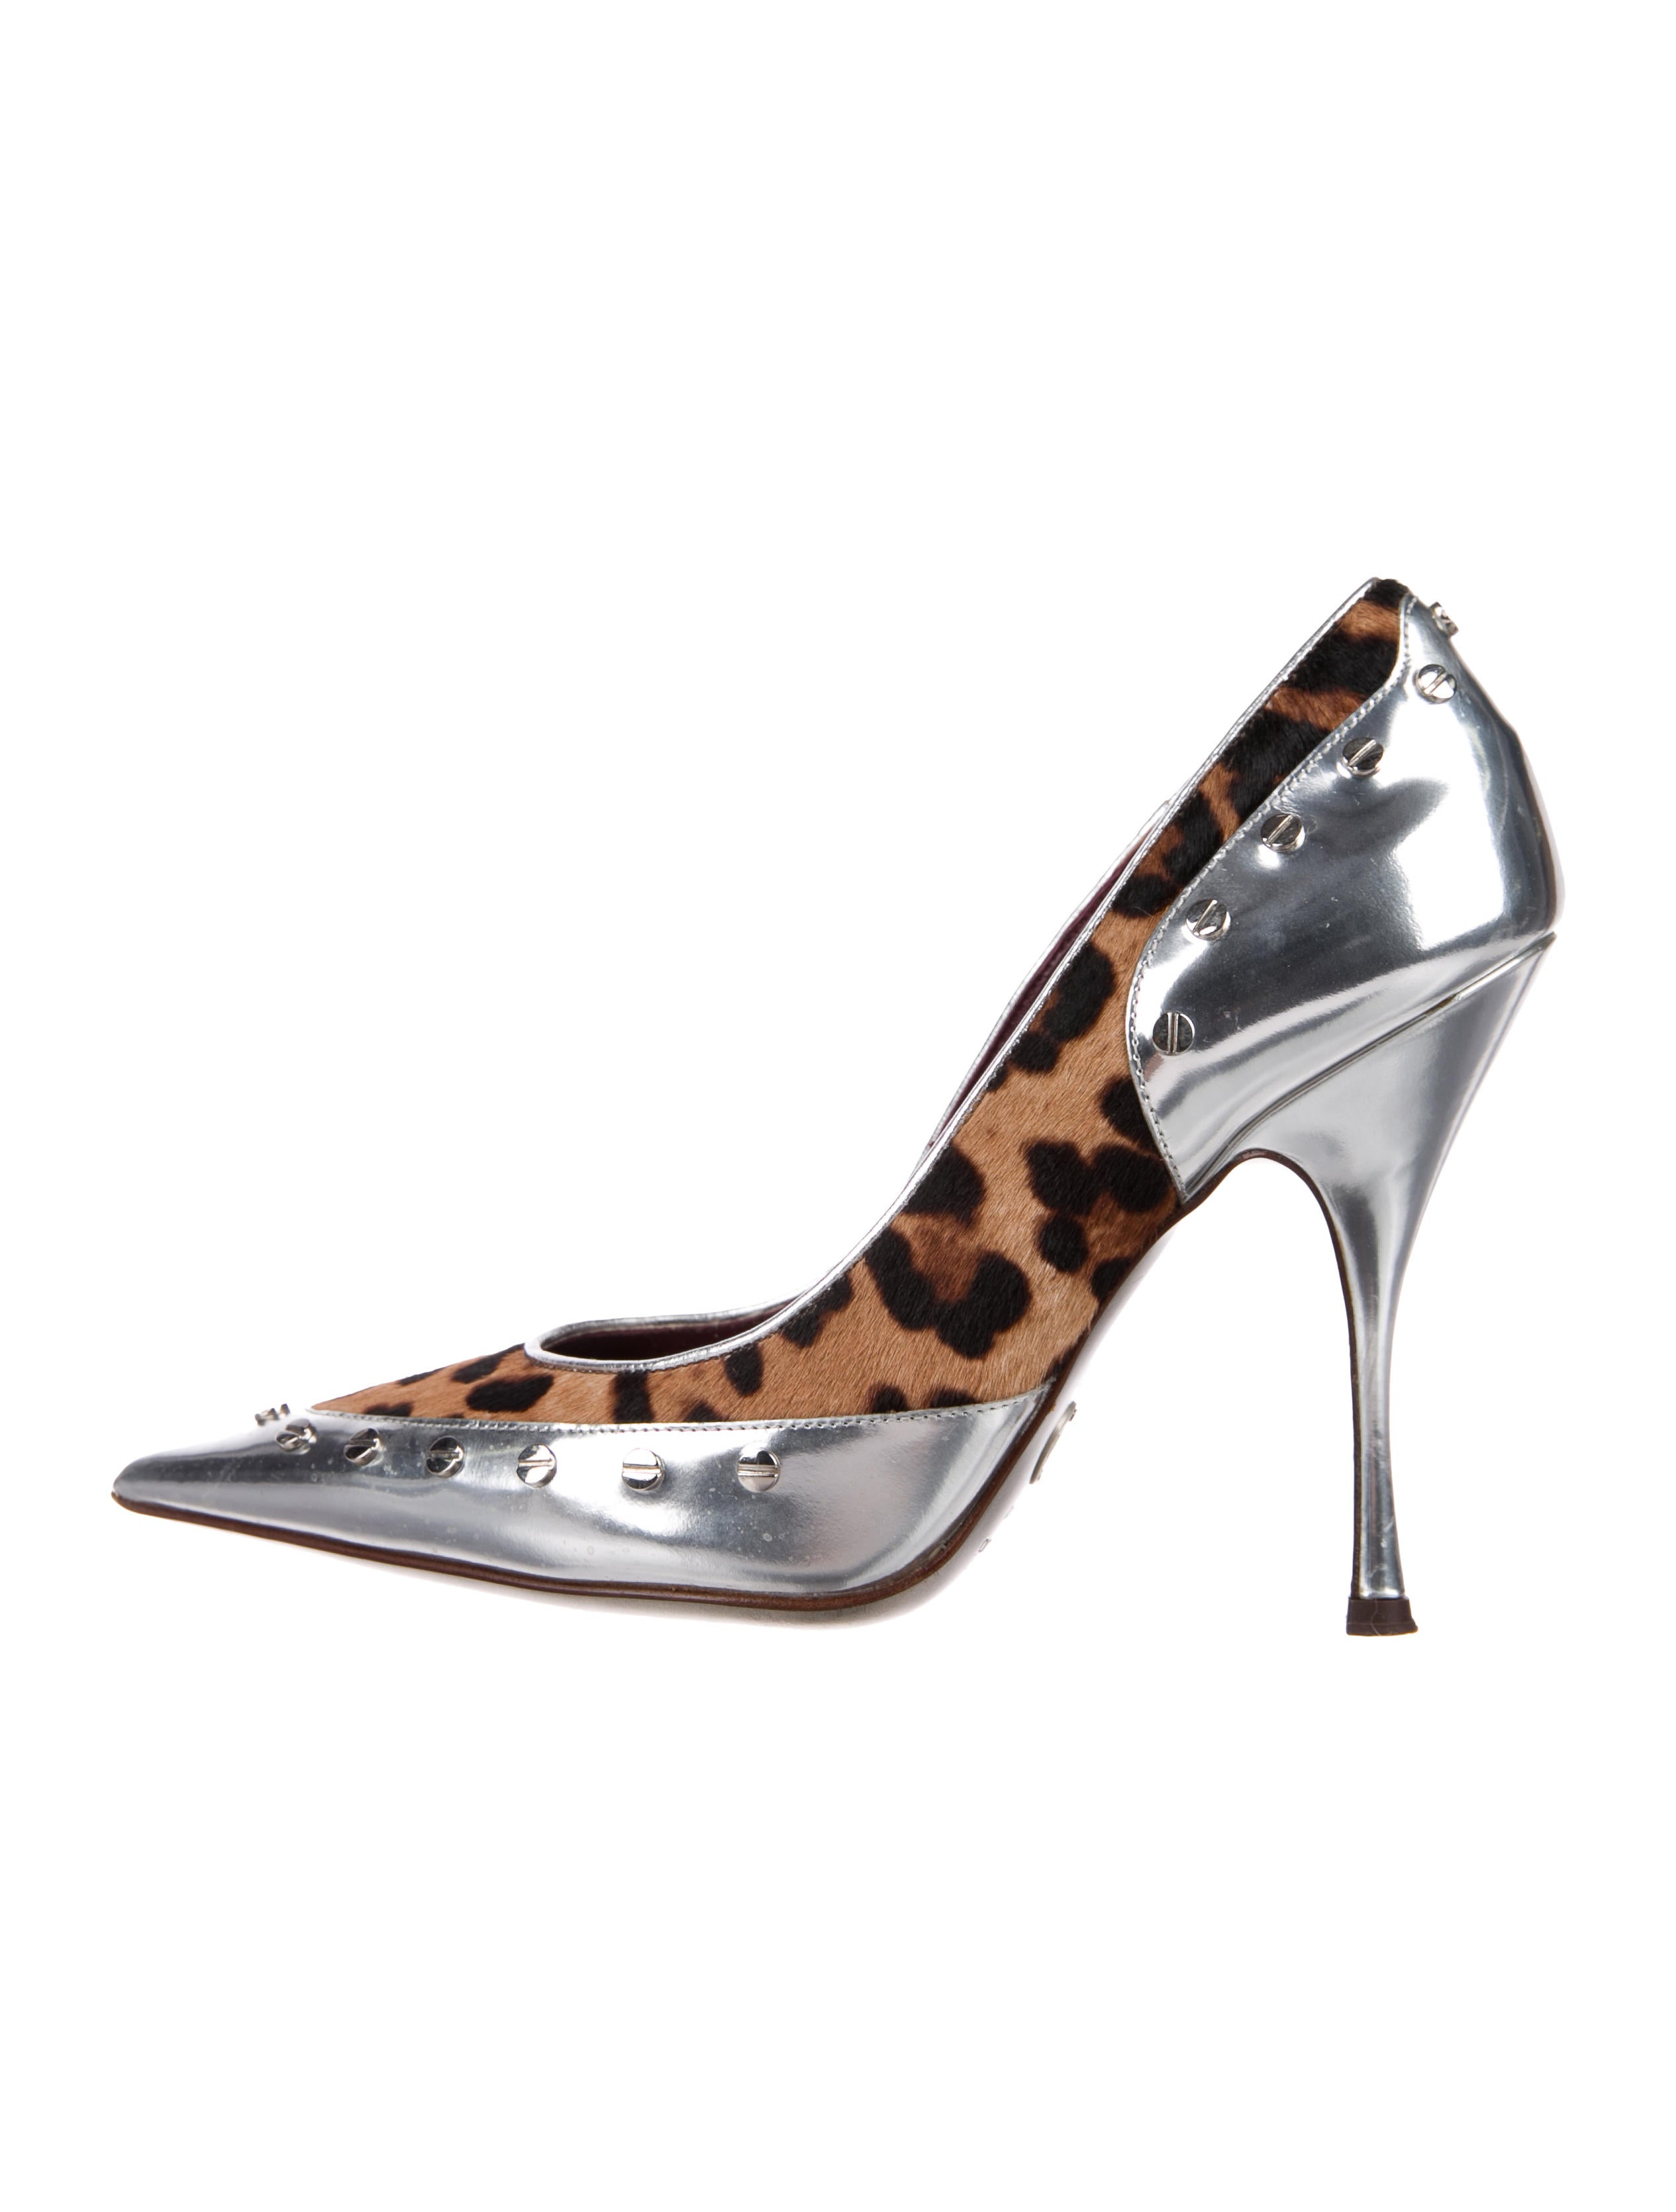 Dolce & Gabbana Leather Ponyhair-Accented Pumps outlet real the cheapest cheap online outlet many kinds of discount real iczNGAw